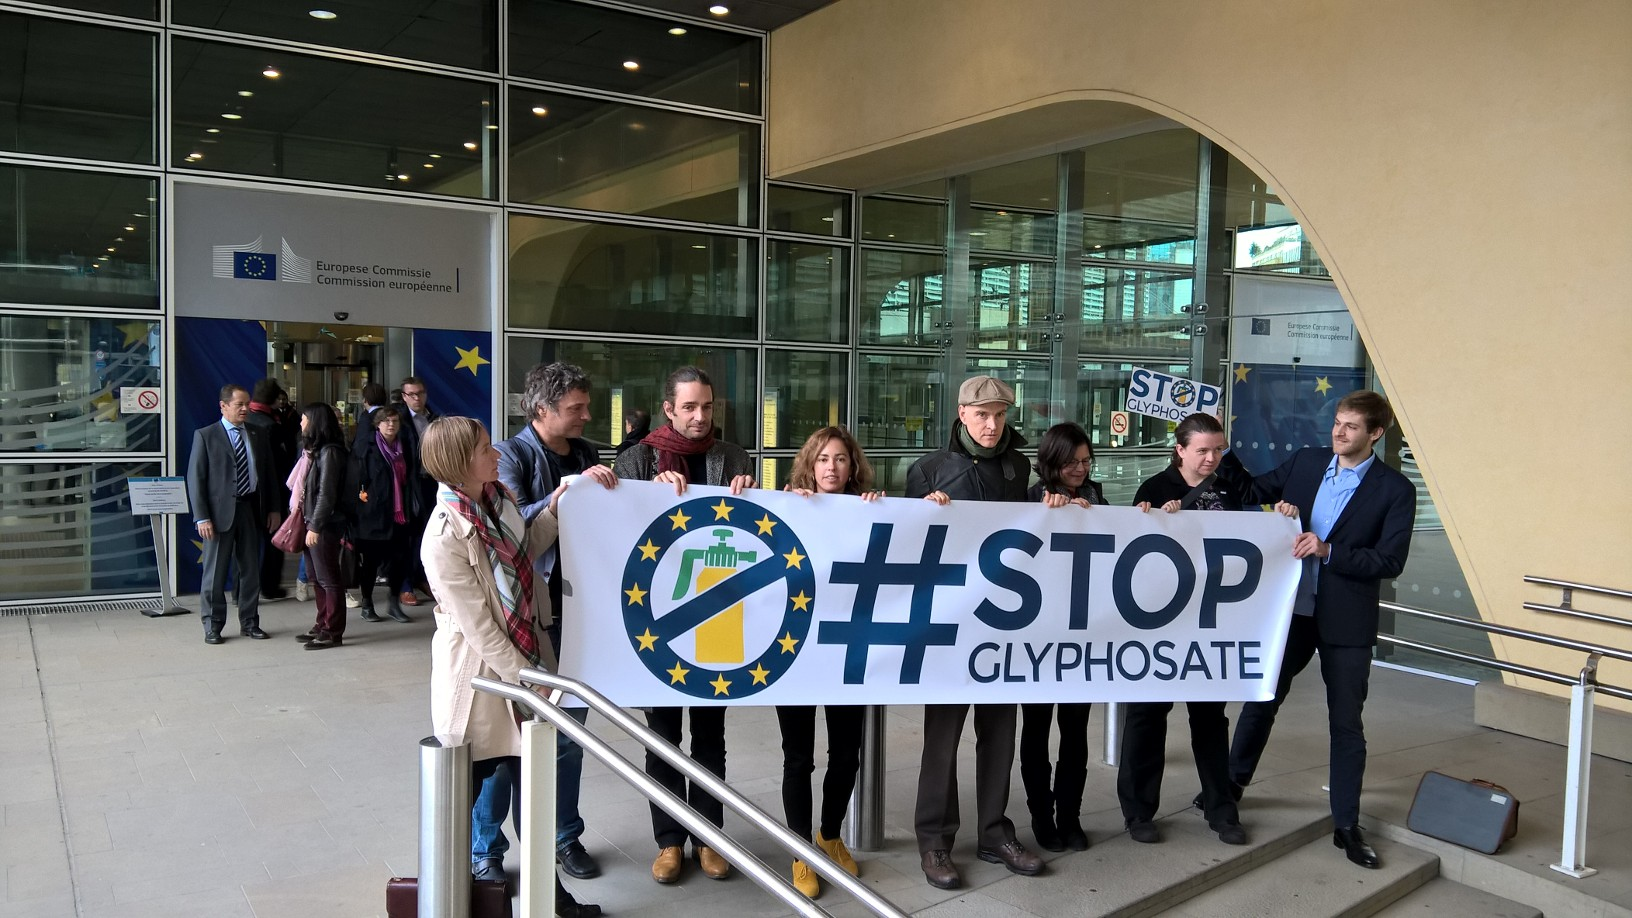 European Parliament votes to ban glyphosate by 2022 in non-binding vote